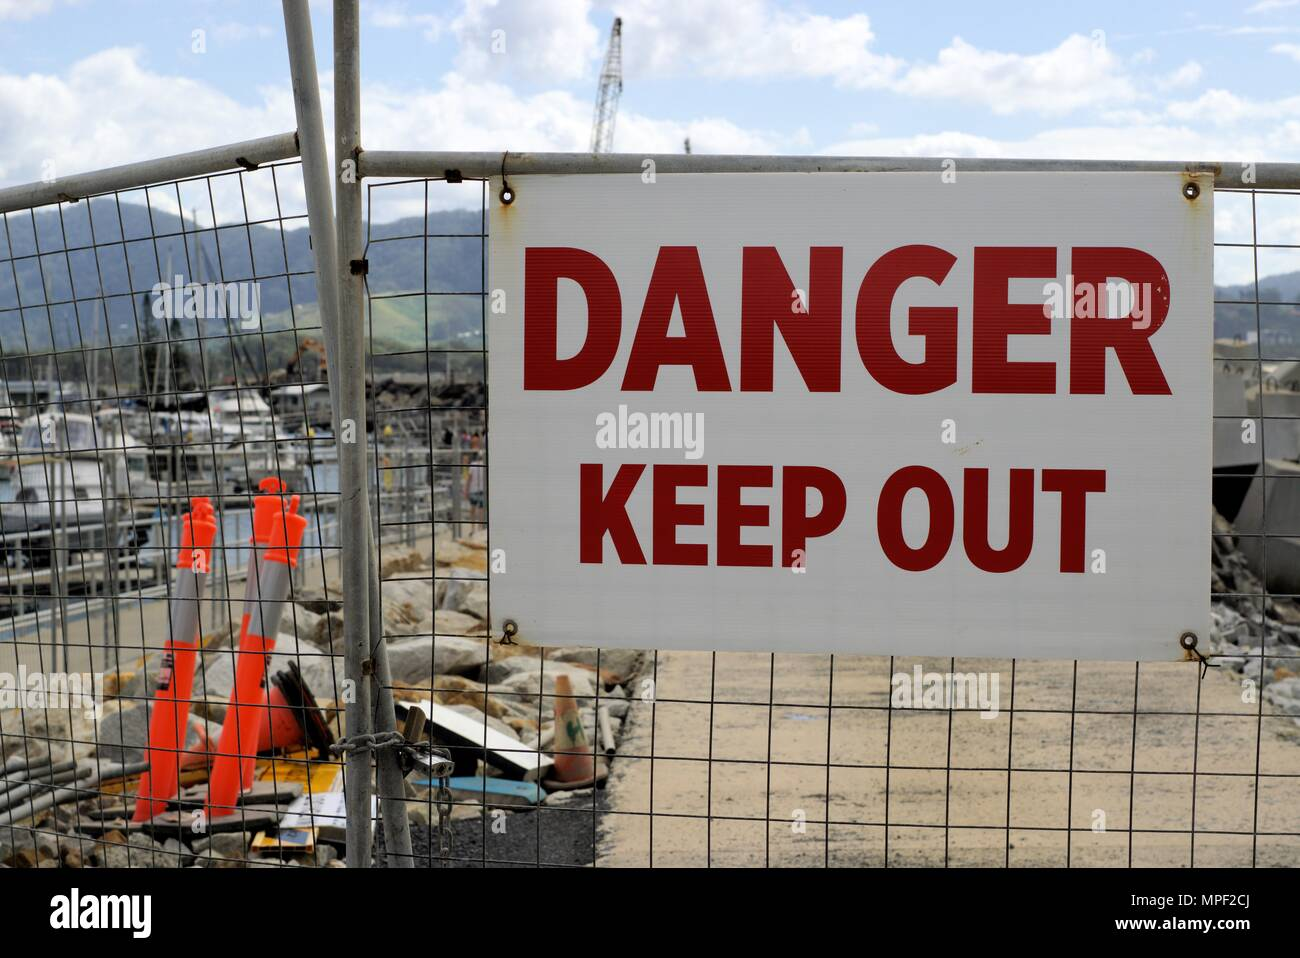 'Danger Keep Out' sign board on fence gate at construction site in Australia - Stock Image